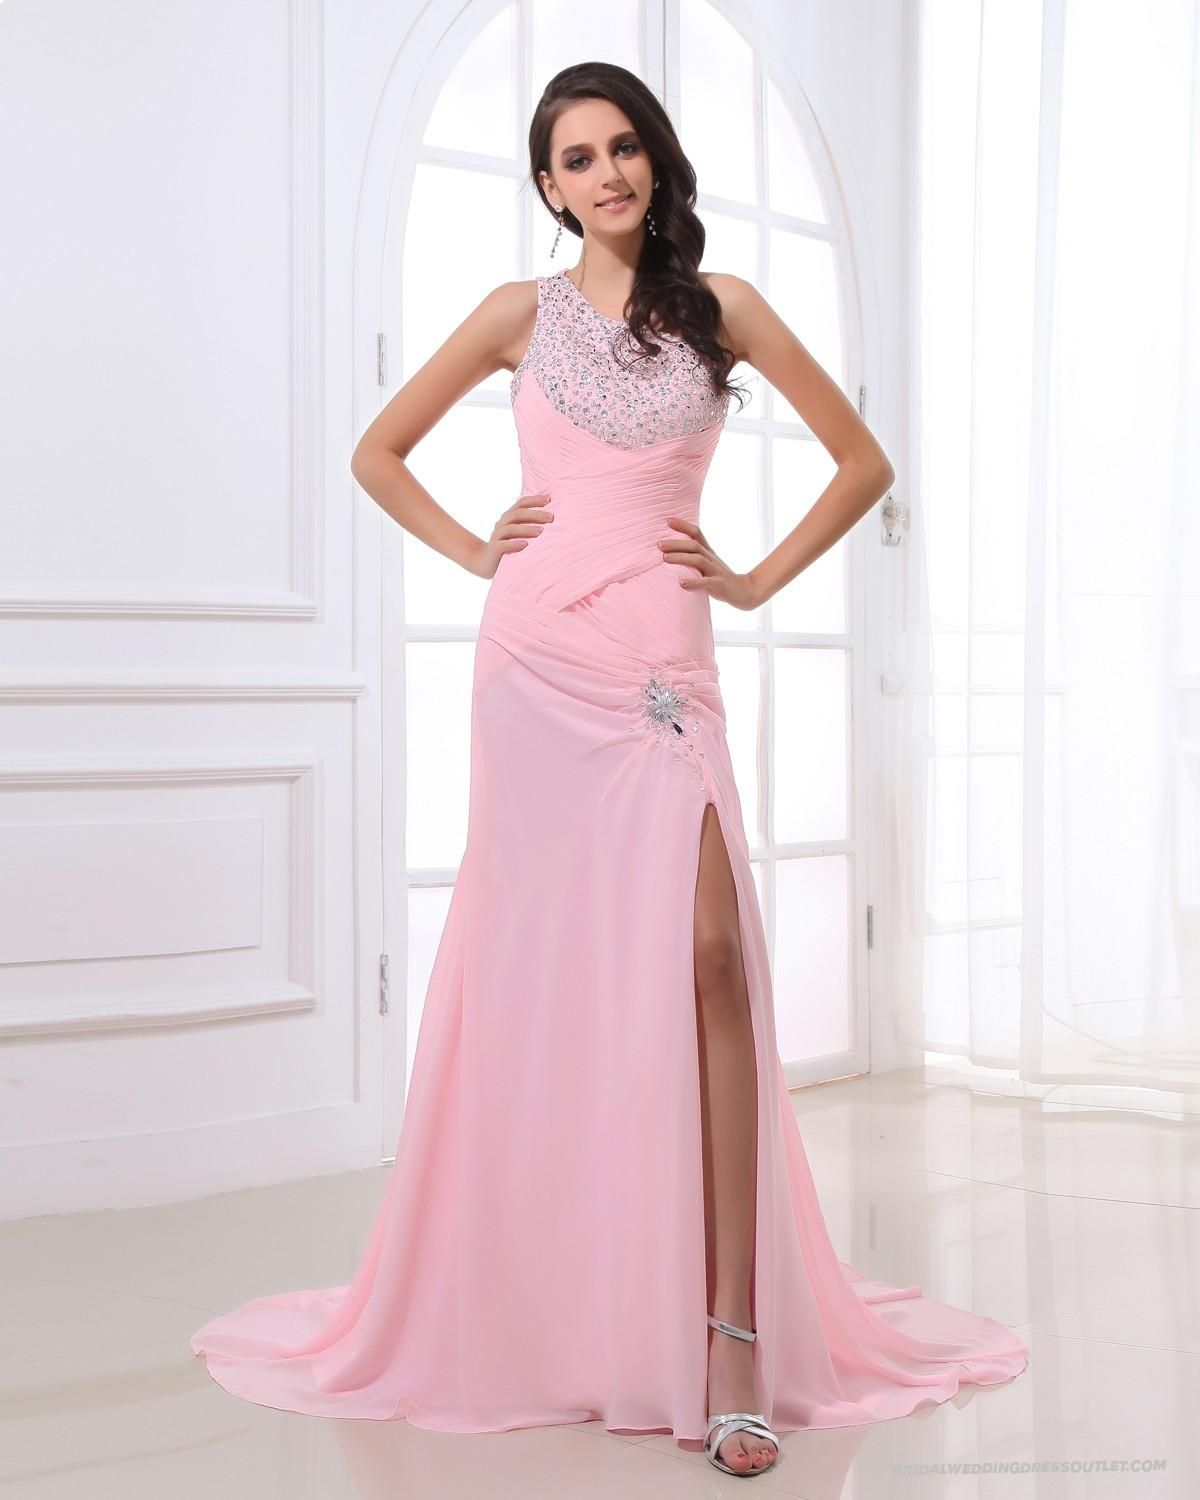 Beaded Pink Evening Dress with Front Split - Vuhera.com | High ...